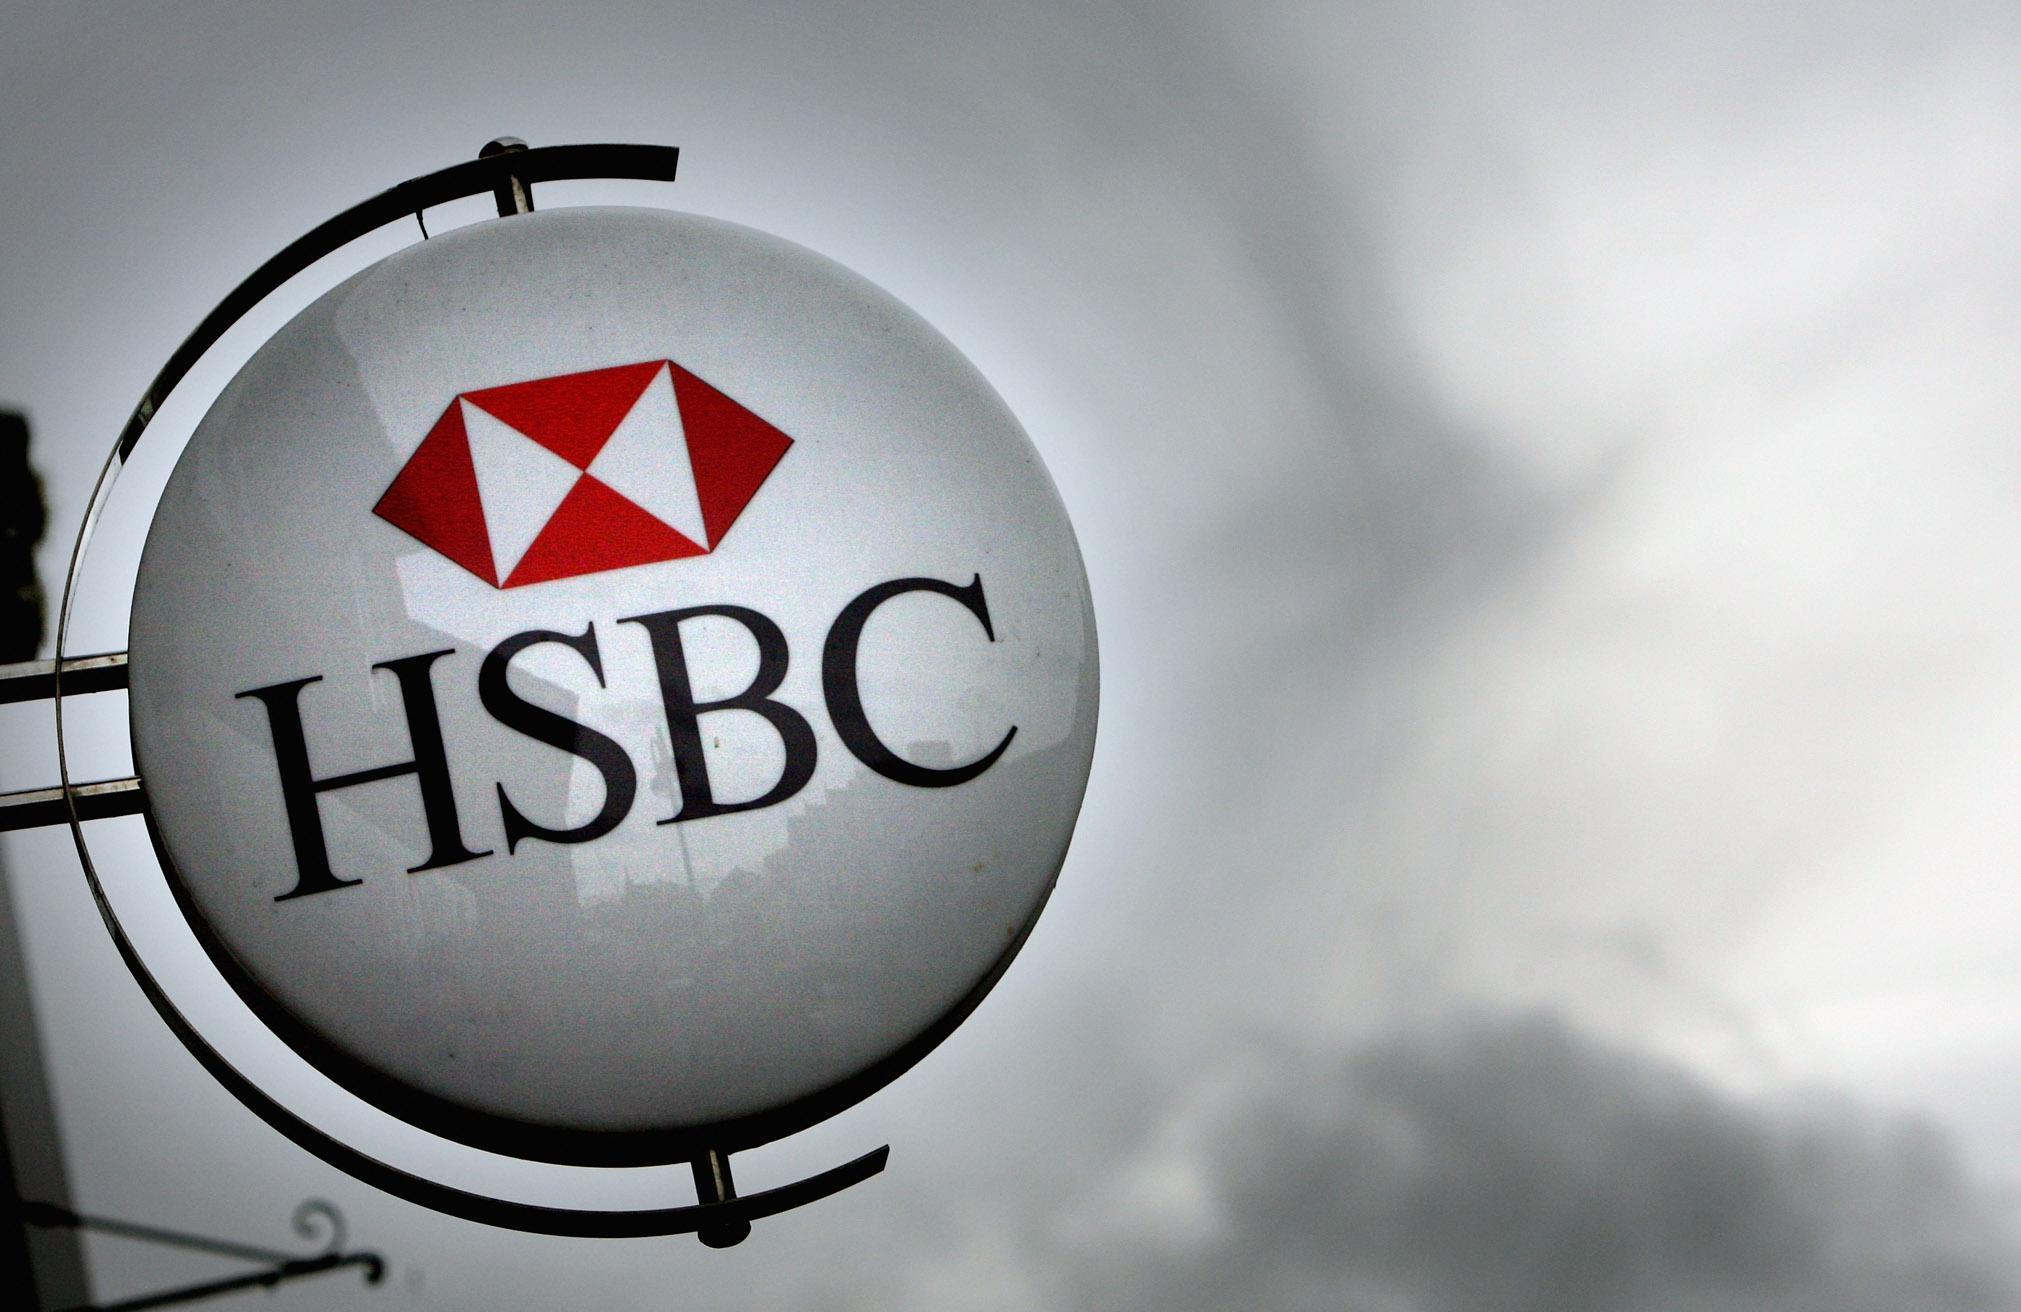 HSBC 'to axe 10,000 jobs' to cut costs